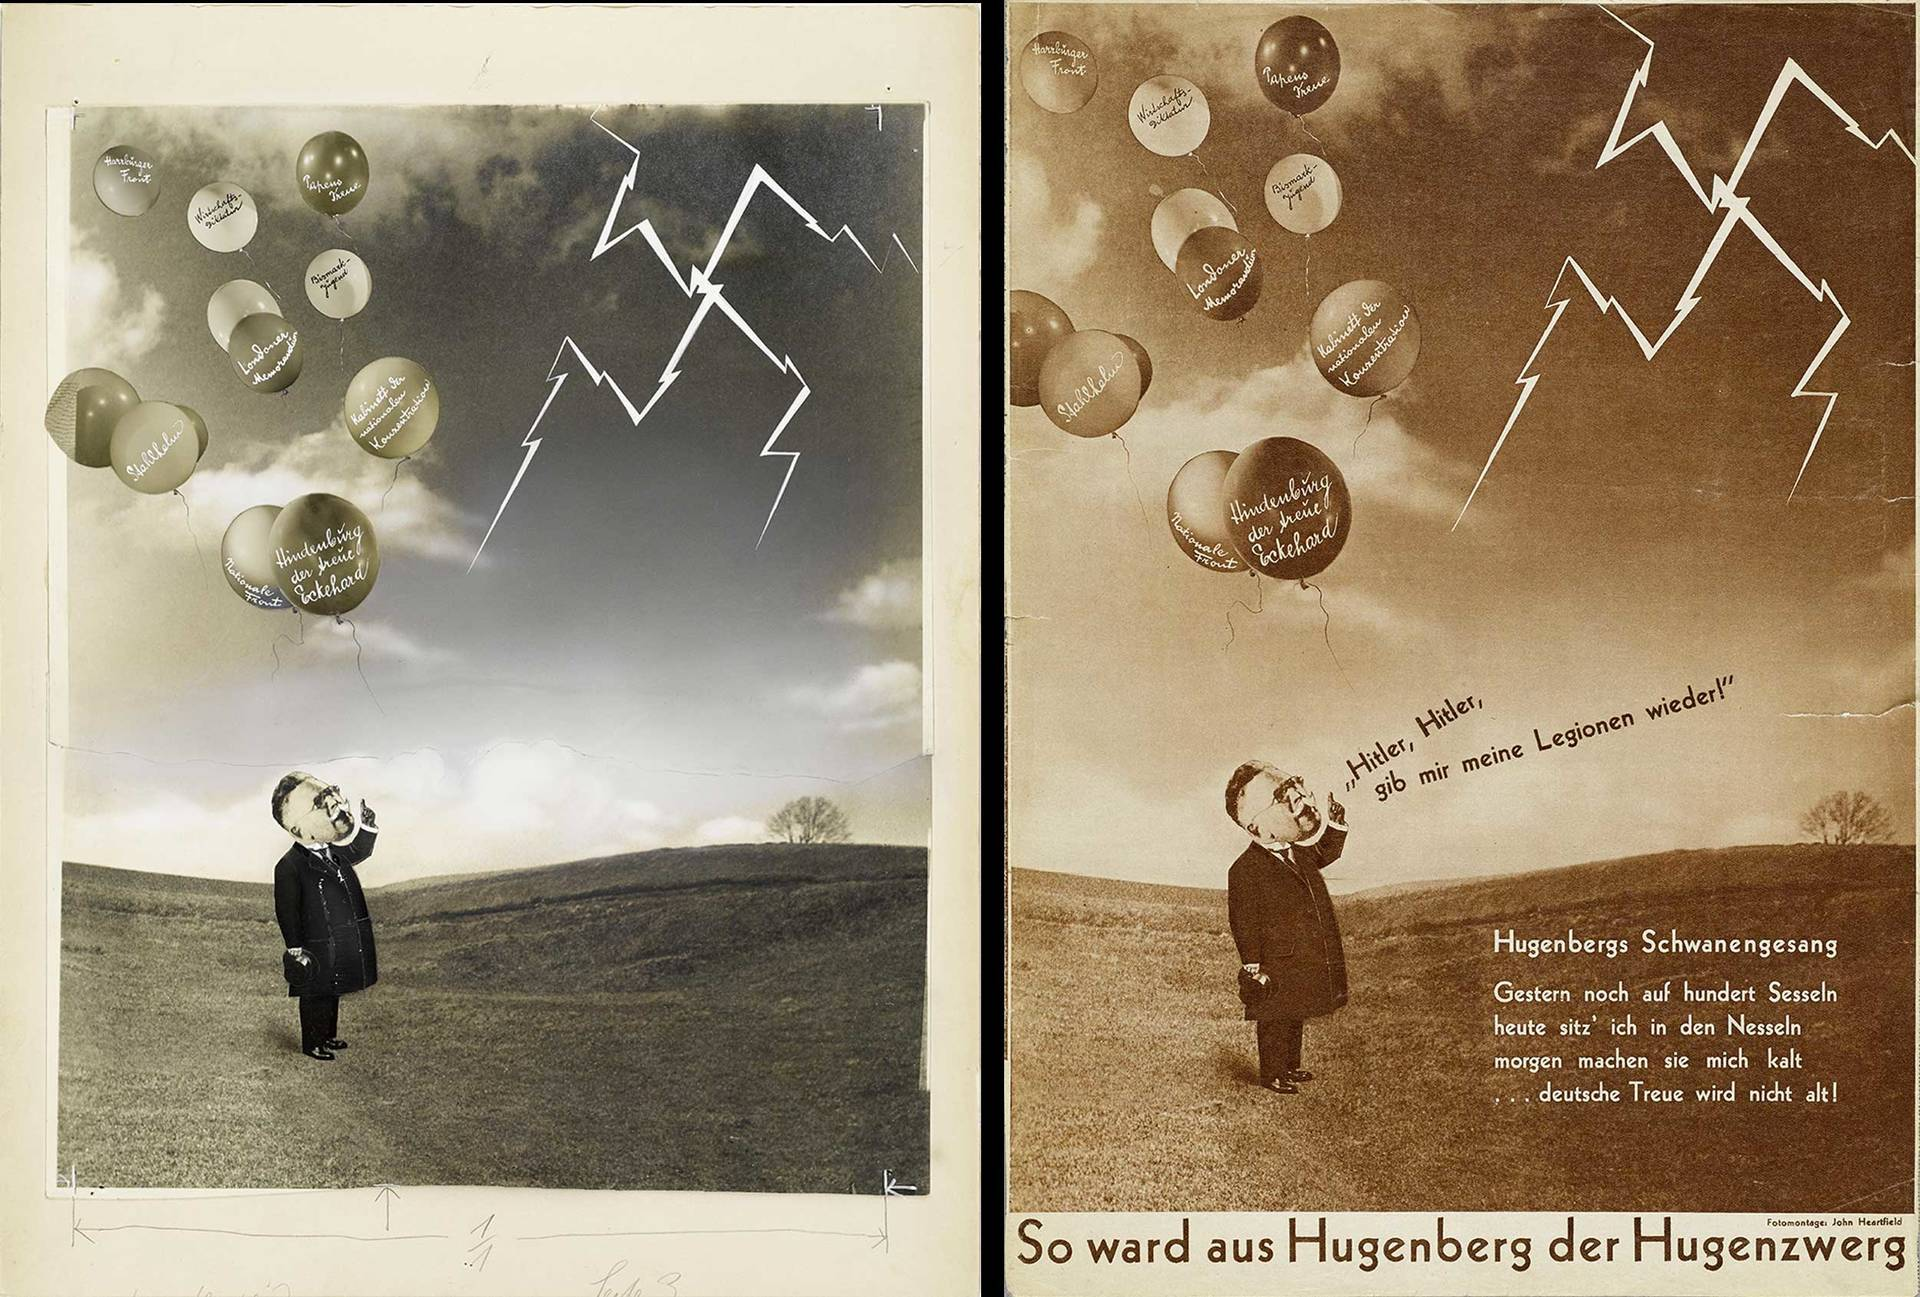 original photomontage and AIZ page, 6.7.1933